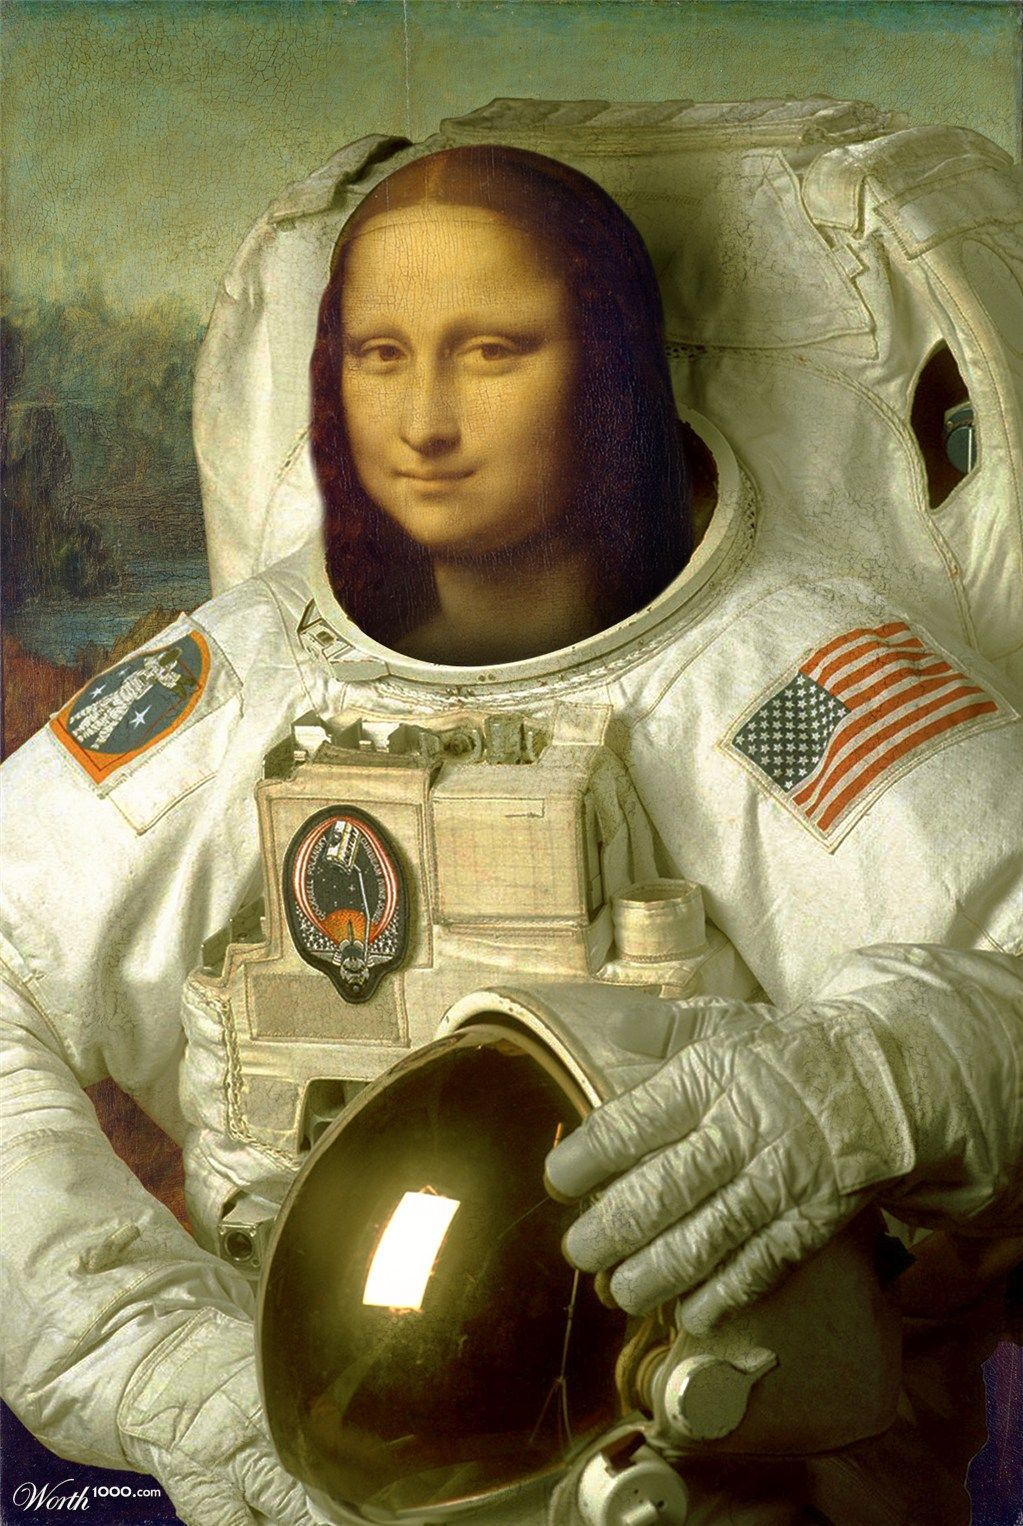 mona astronaut worth1000 contests monadiva mona lisa open photoshop contest is now closed the contest received 45 submissions from 36 creatives